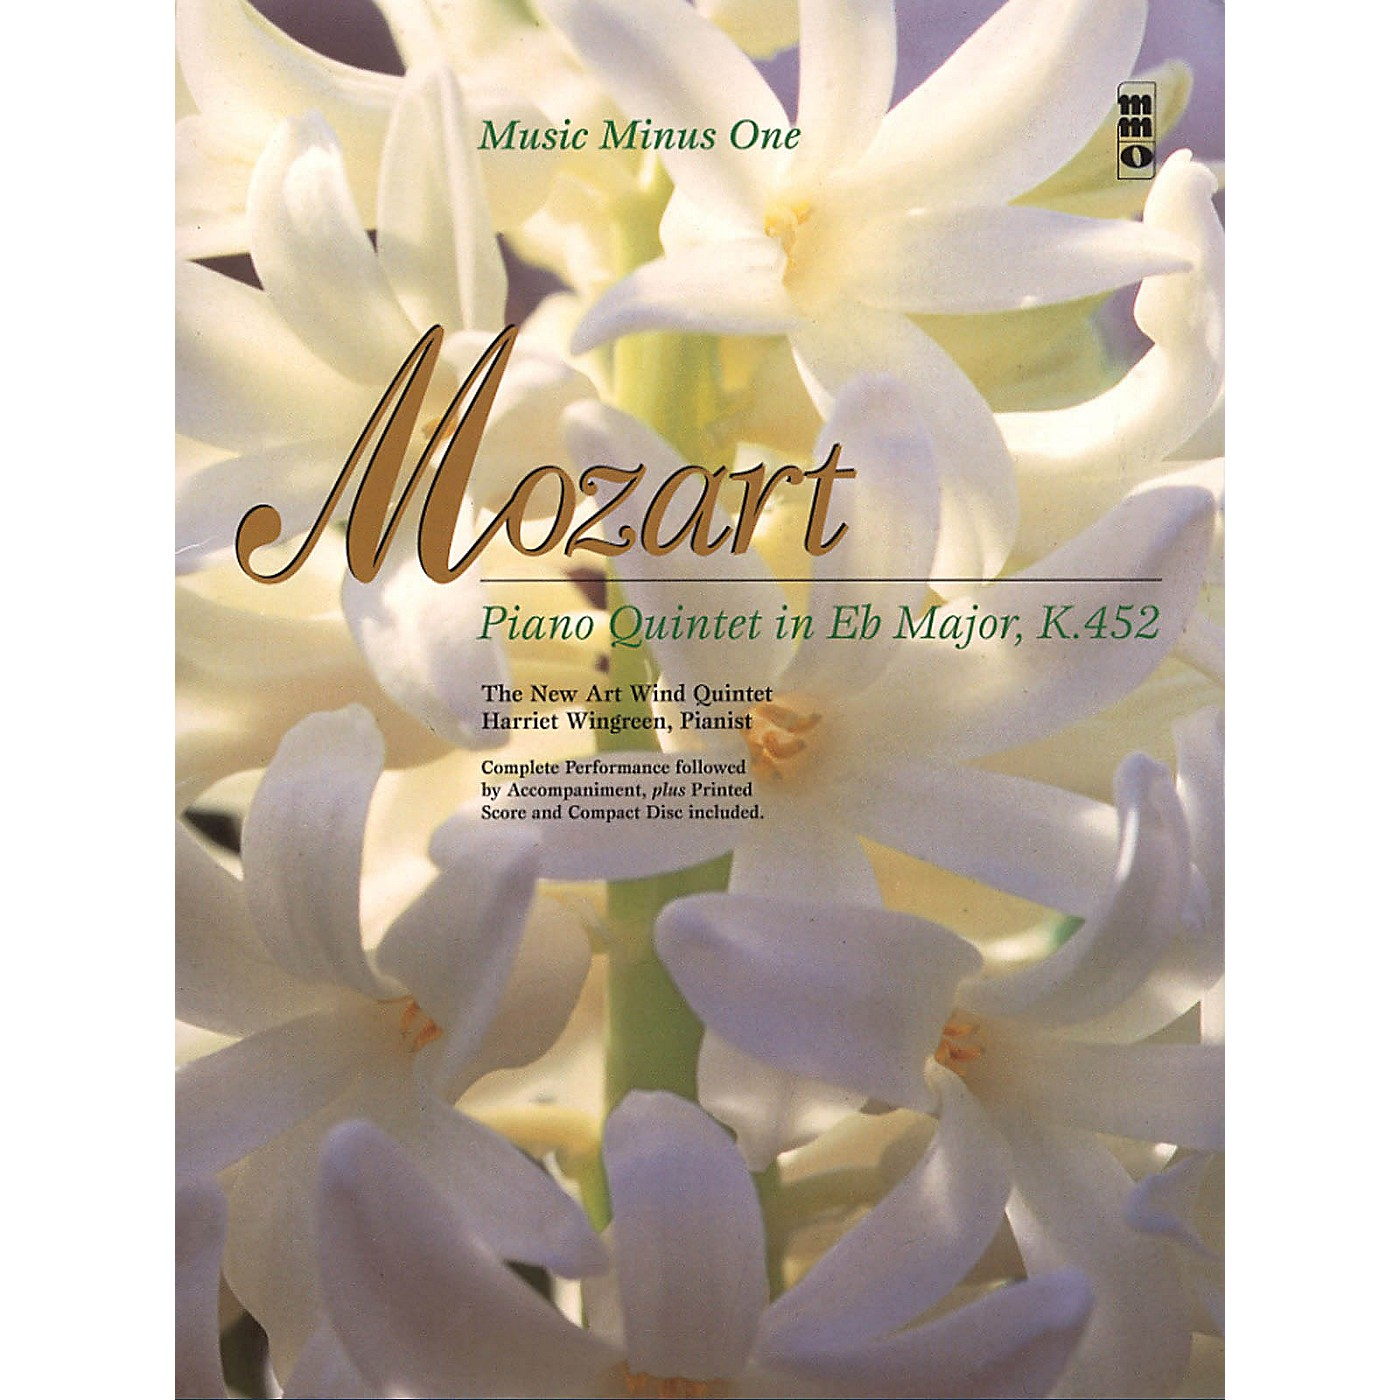 Music Minus One Mozart - Piano Quintet in Eb Major, K.452 Music Minus One Softcover with CD by Wolfgang Amadeus Mozart thumbnail